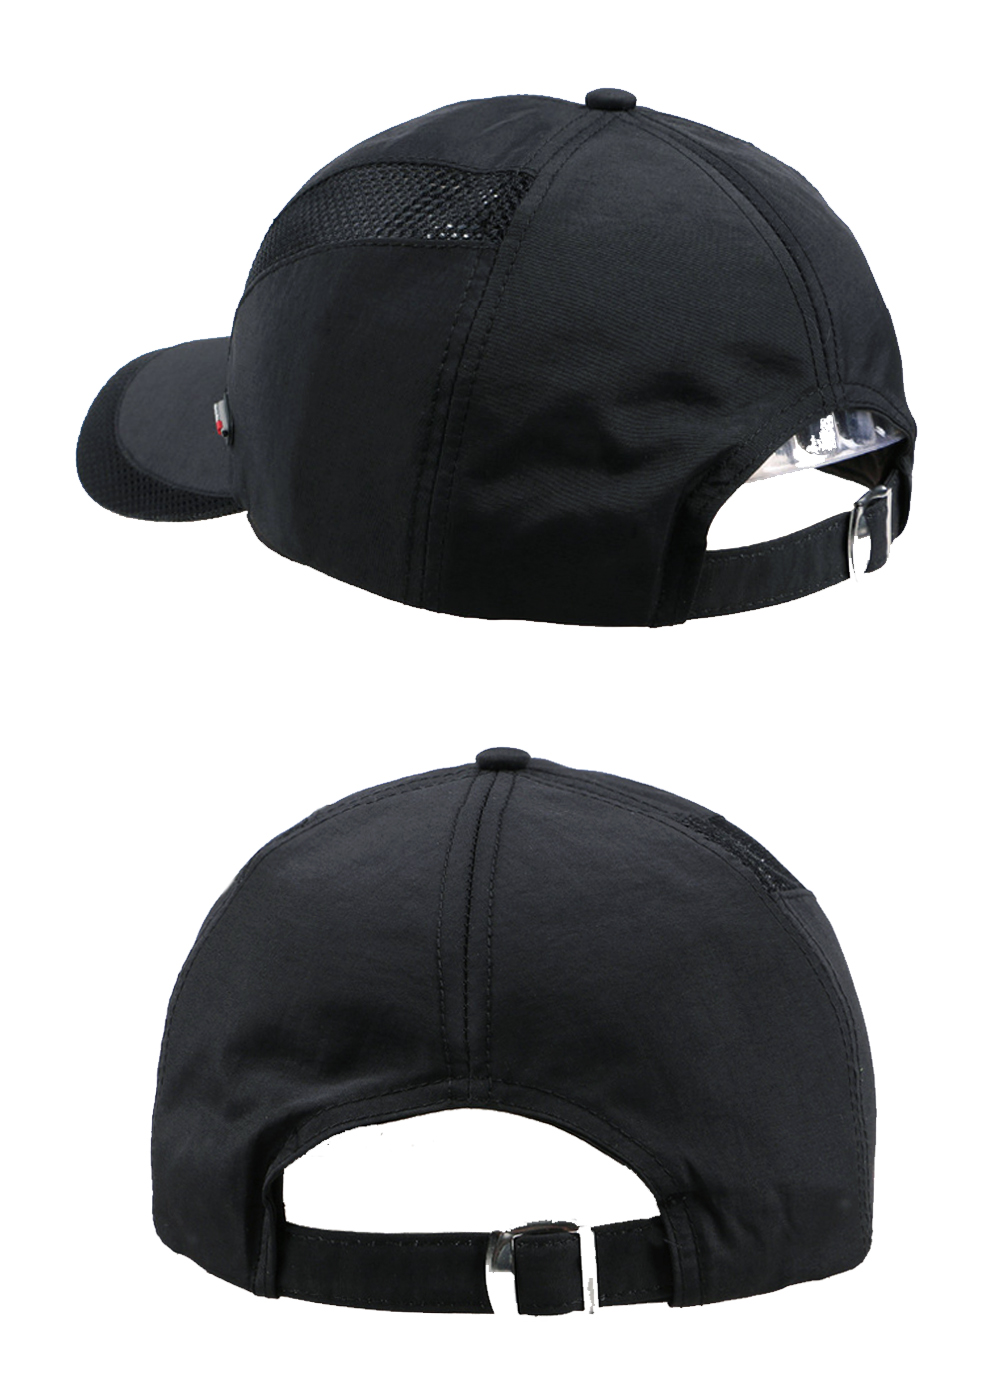 Cool Comfort Breathable Quick Dry Cap - Black Cap Rear Side Angle and Rear Views